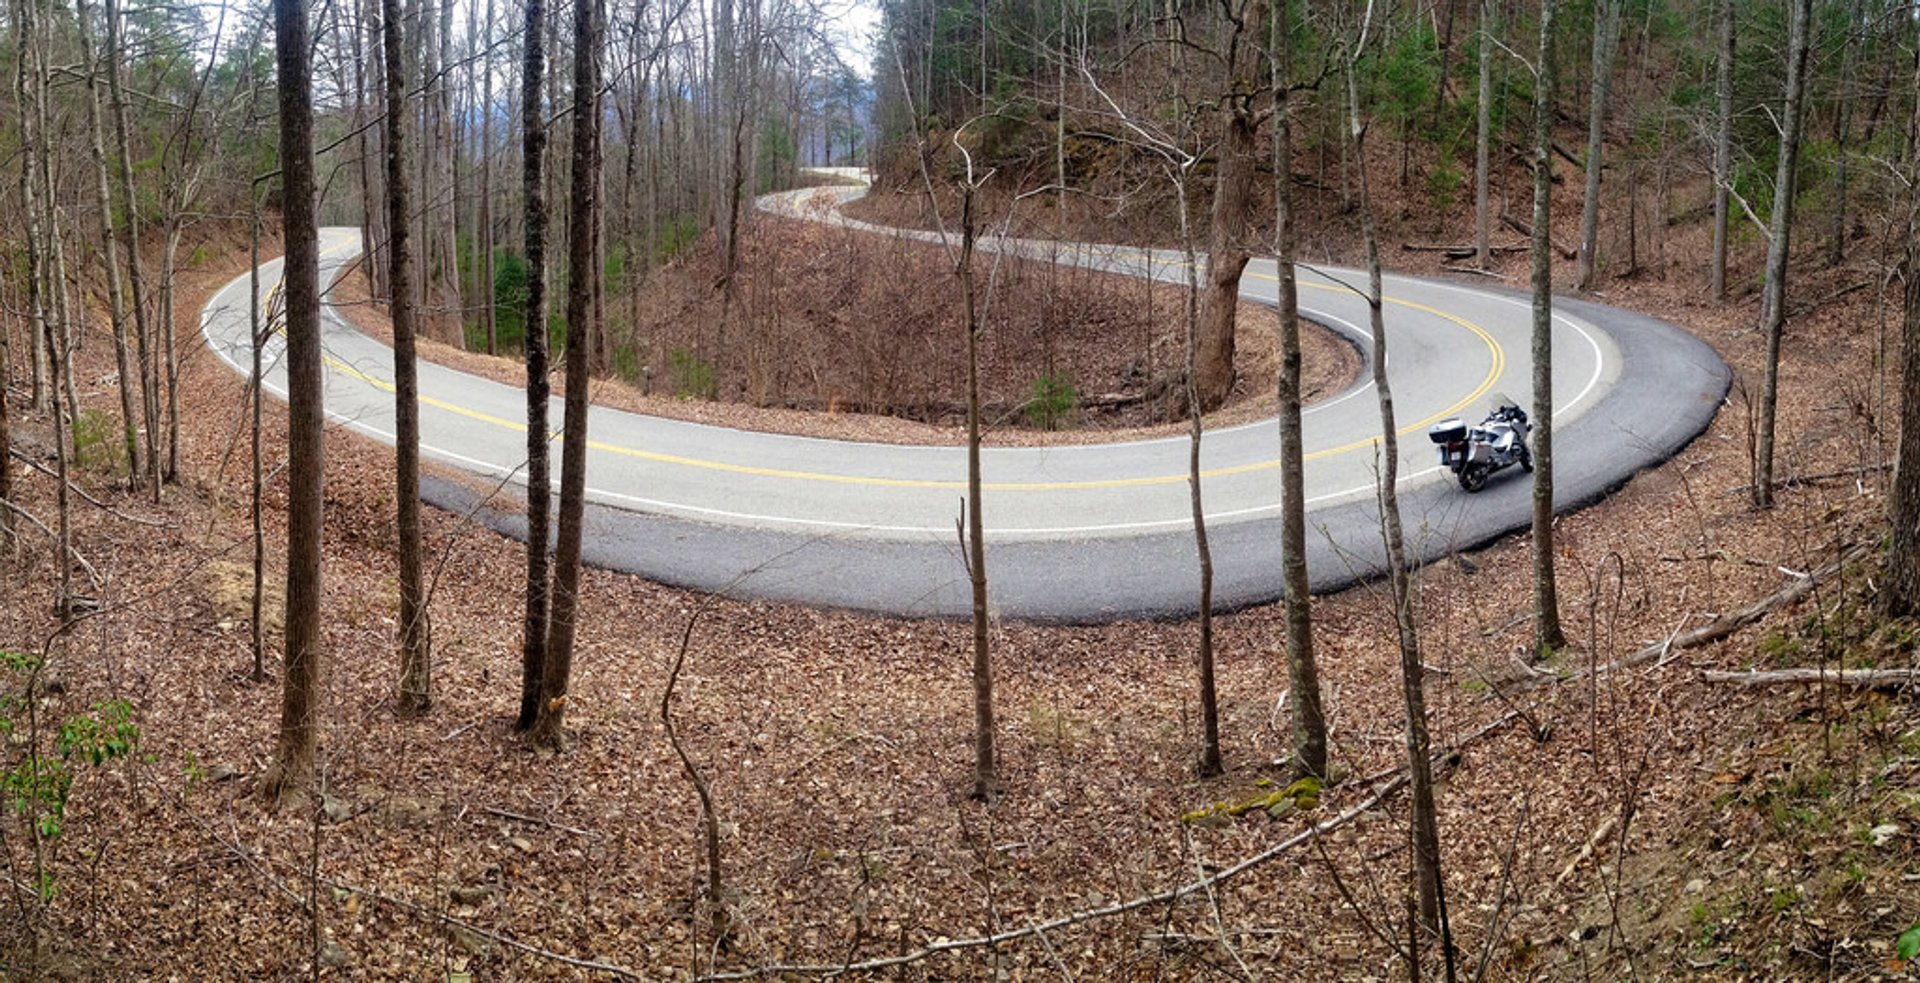 Tail Of The Dragon Photos >> Best Time For The Tail Of The Dragon Deals Gap In Tennessee 2019 Map